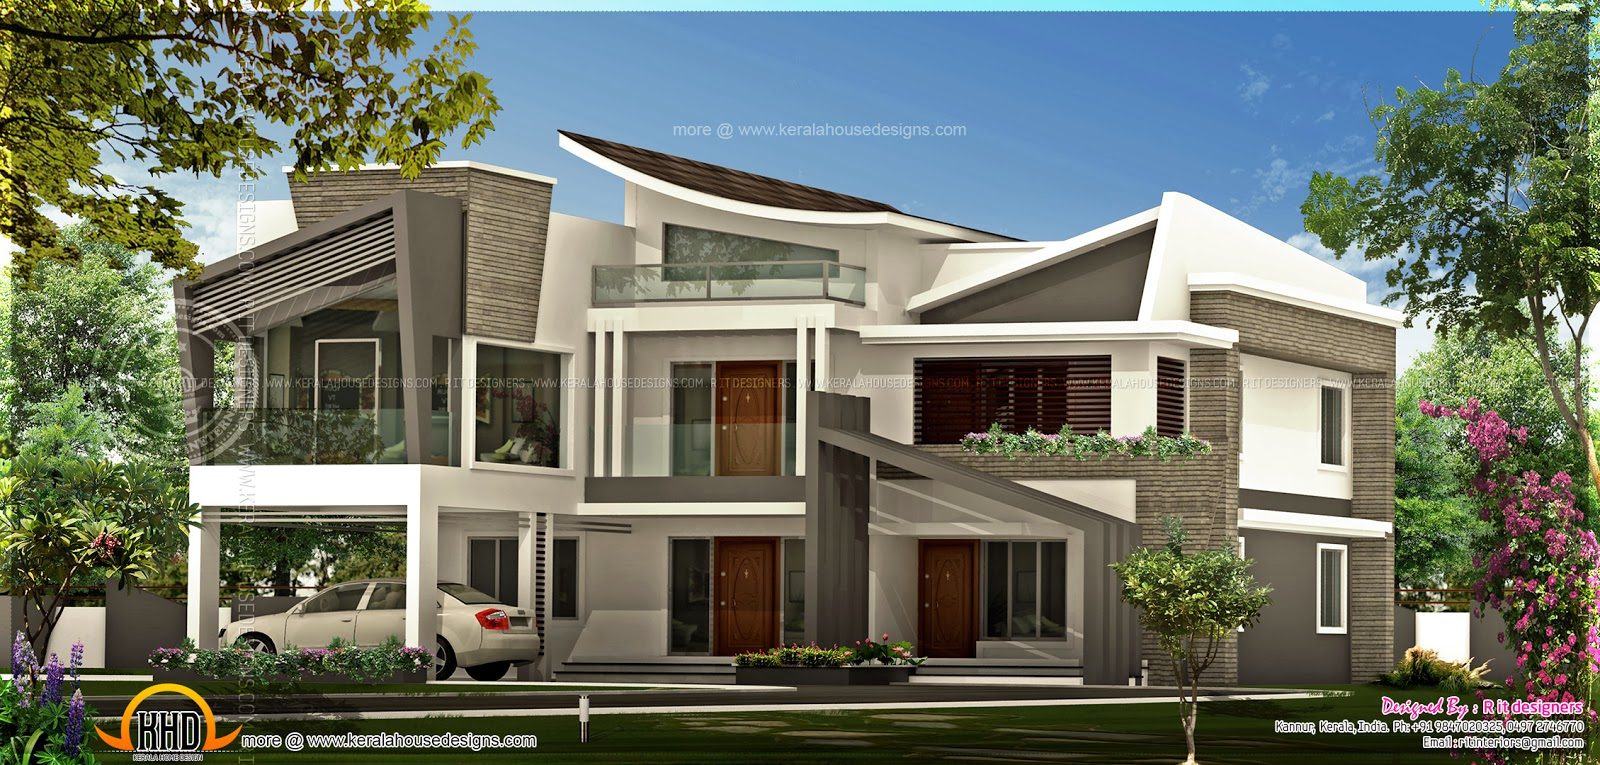 Top 19 photos ideas for unique modern houses home plans for Modern custom homes